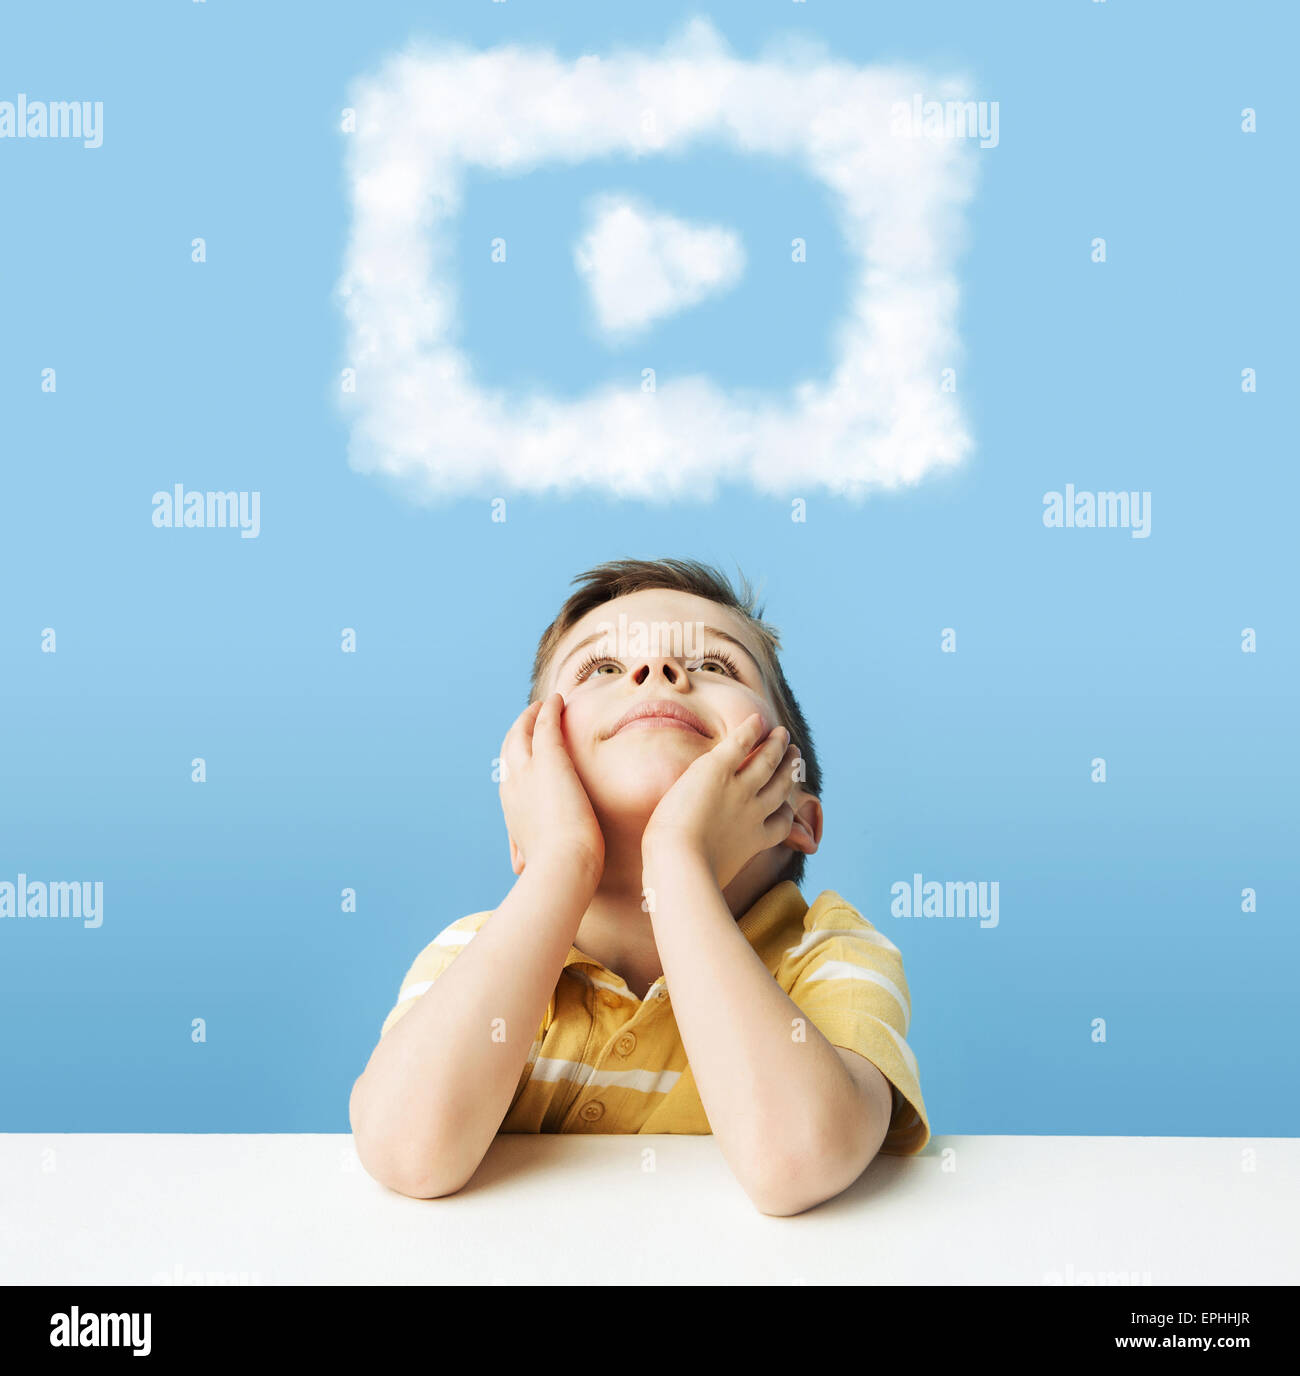 Little man dreaming about cloudlet shapes - Stock Image